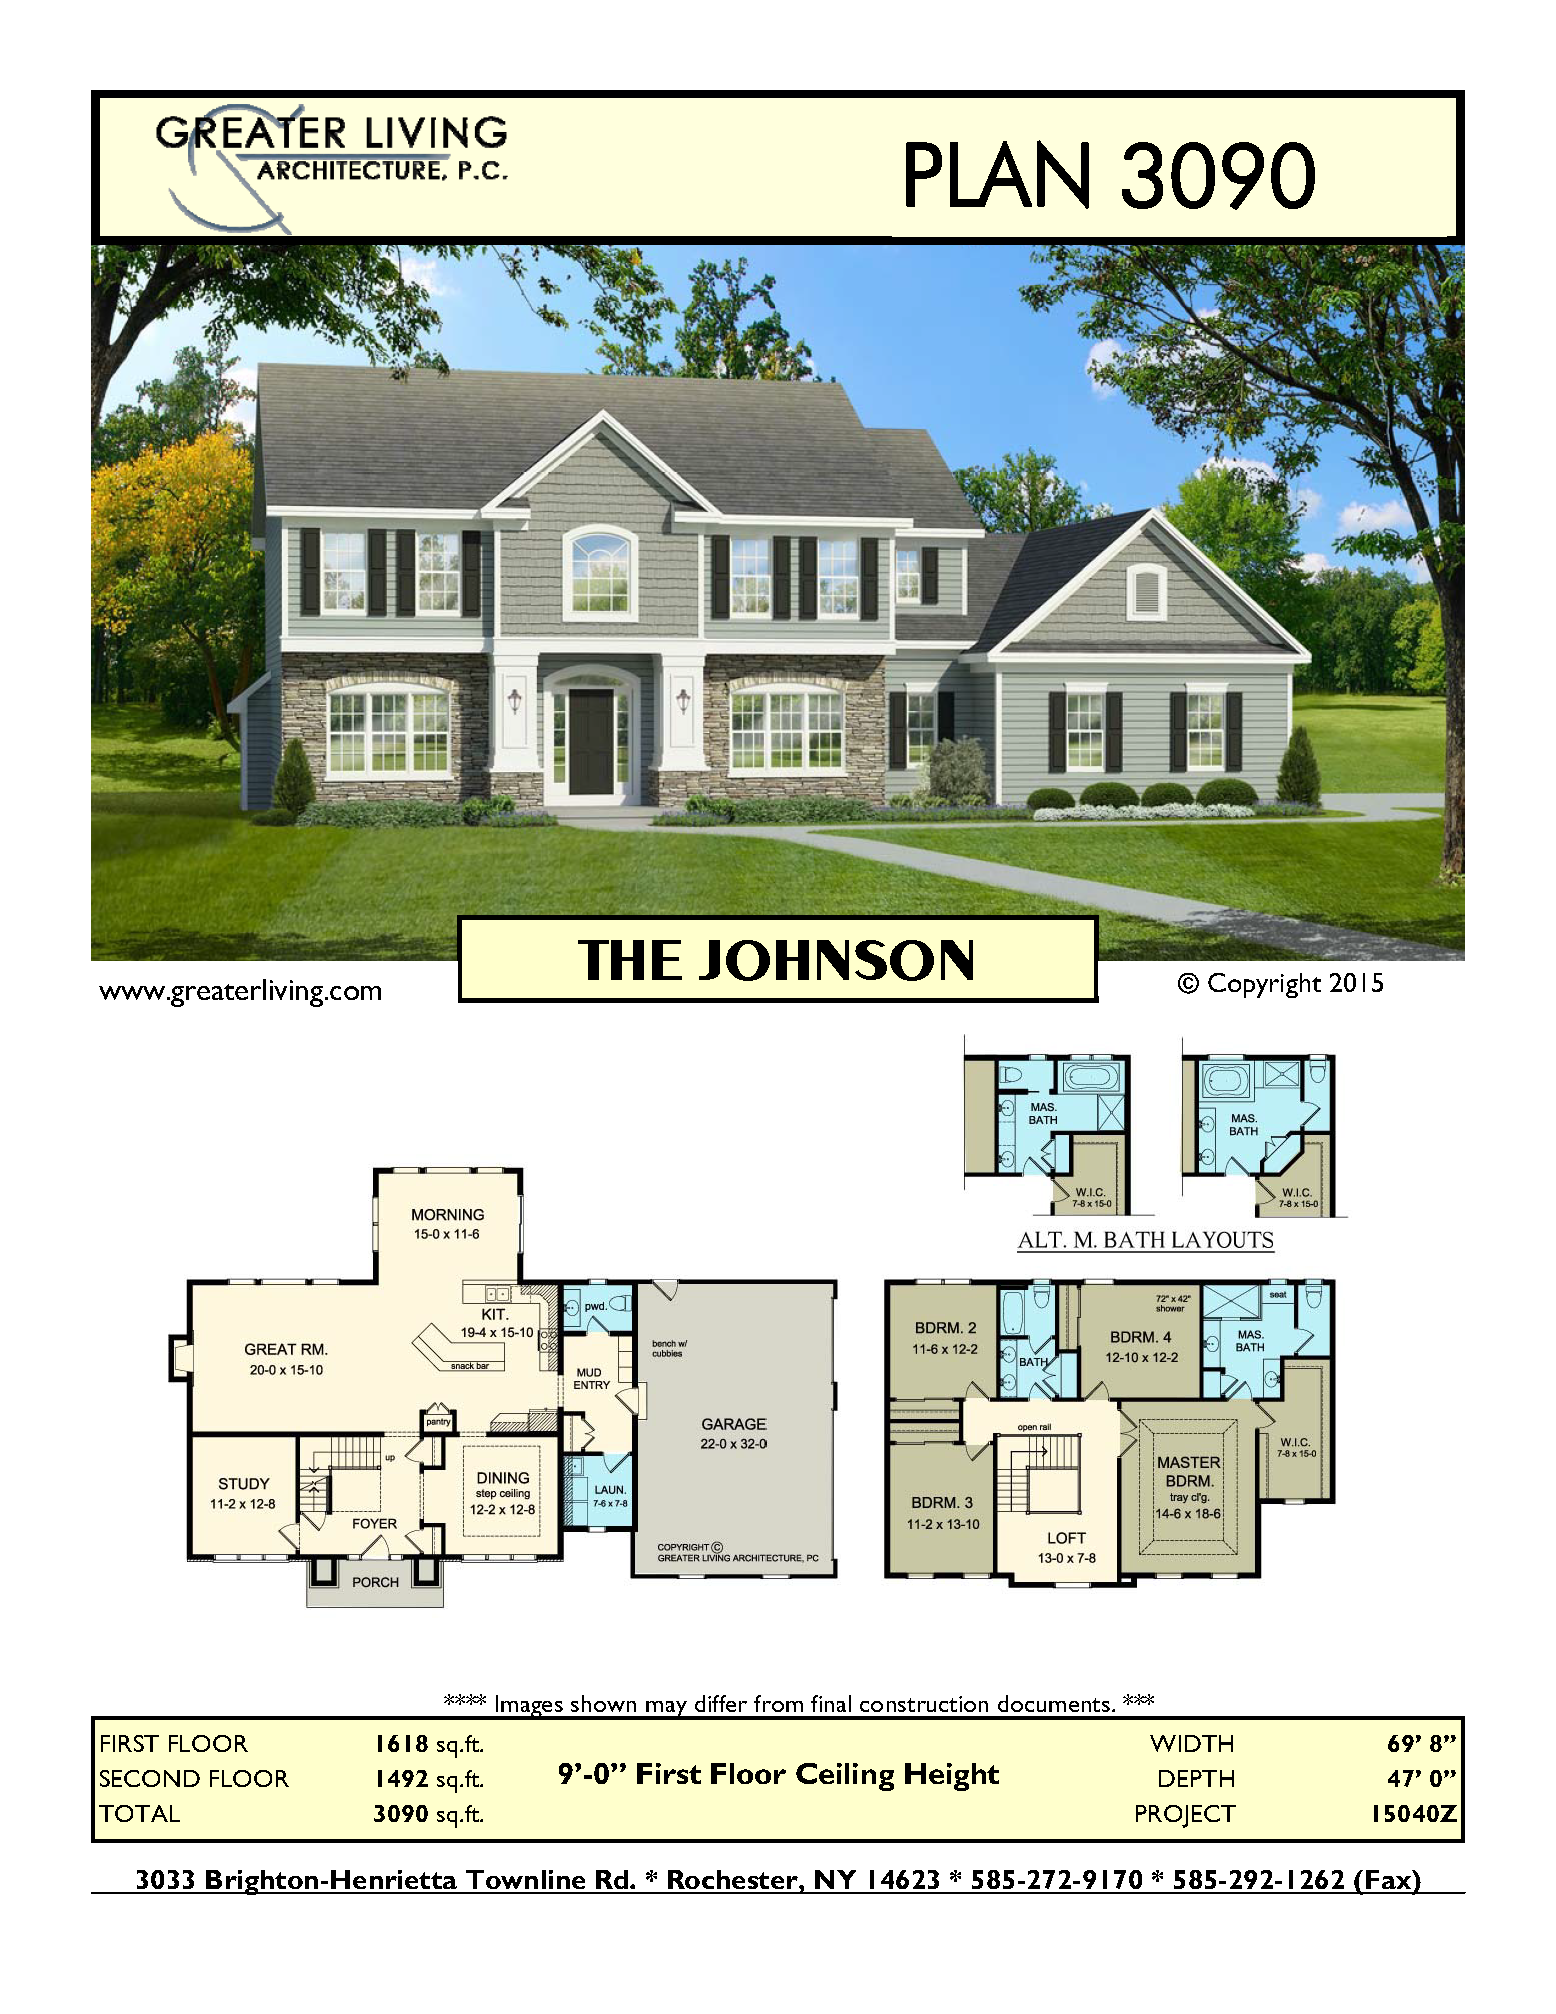 Plan 3090: THE JOHNSON - House Plans - 2 Story House Plan - Greater ...